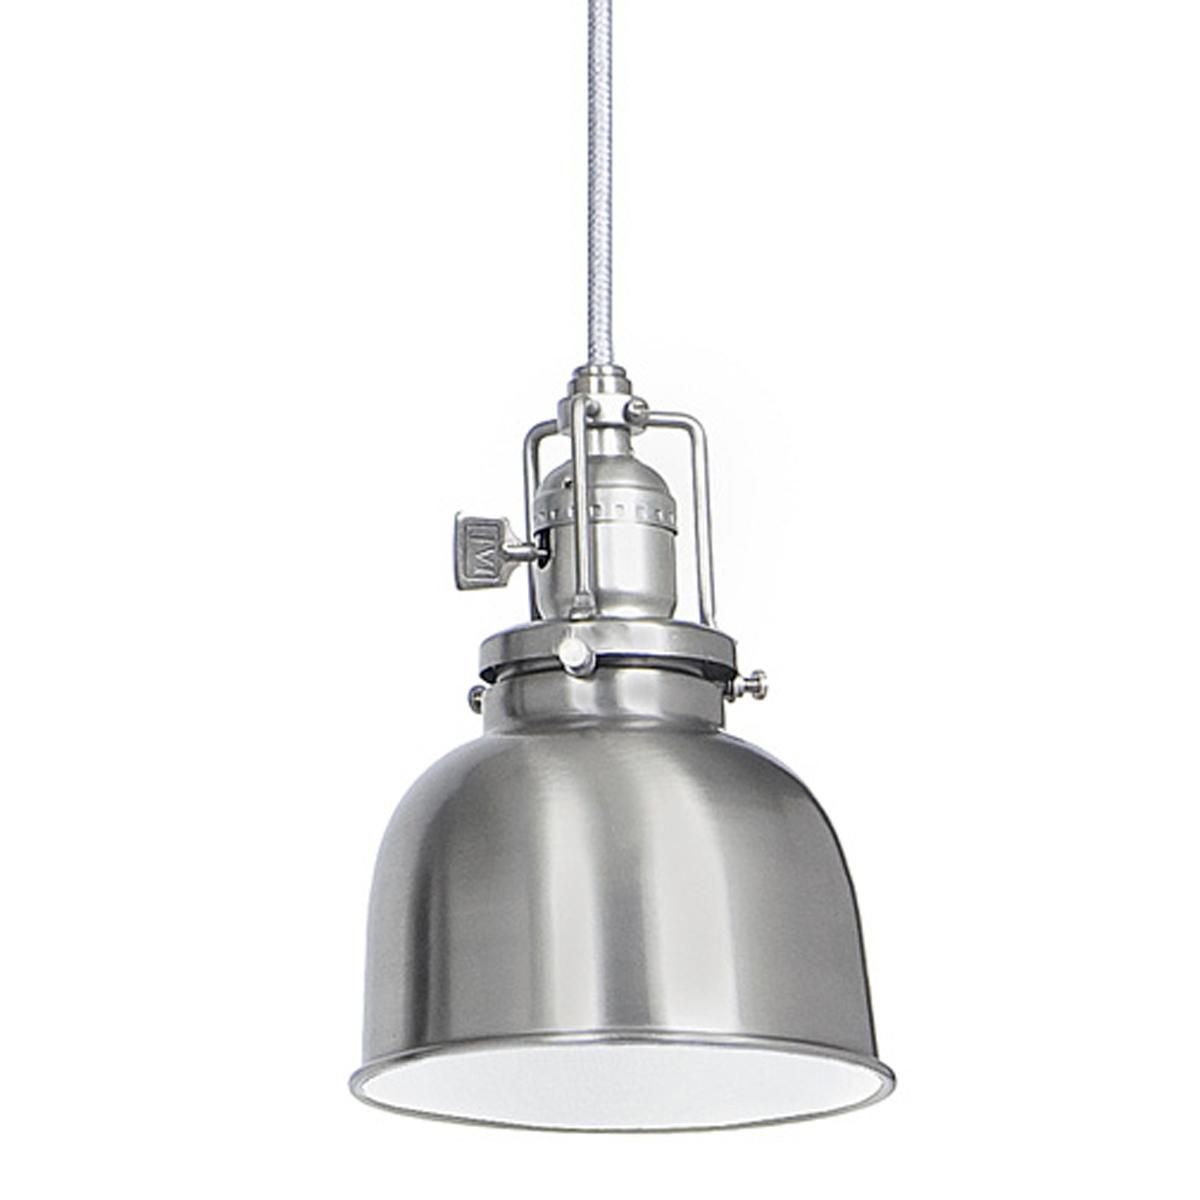 Industrial Pendant Lighting For Kitchen Dome Shade Industrial Pendant In Kitchen Industrial And Pendants